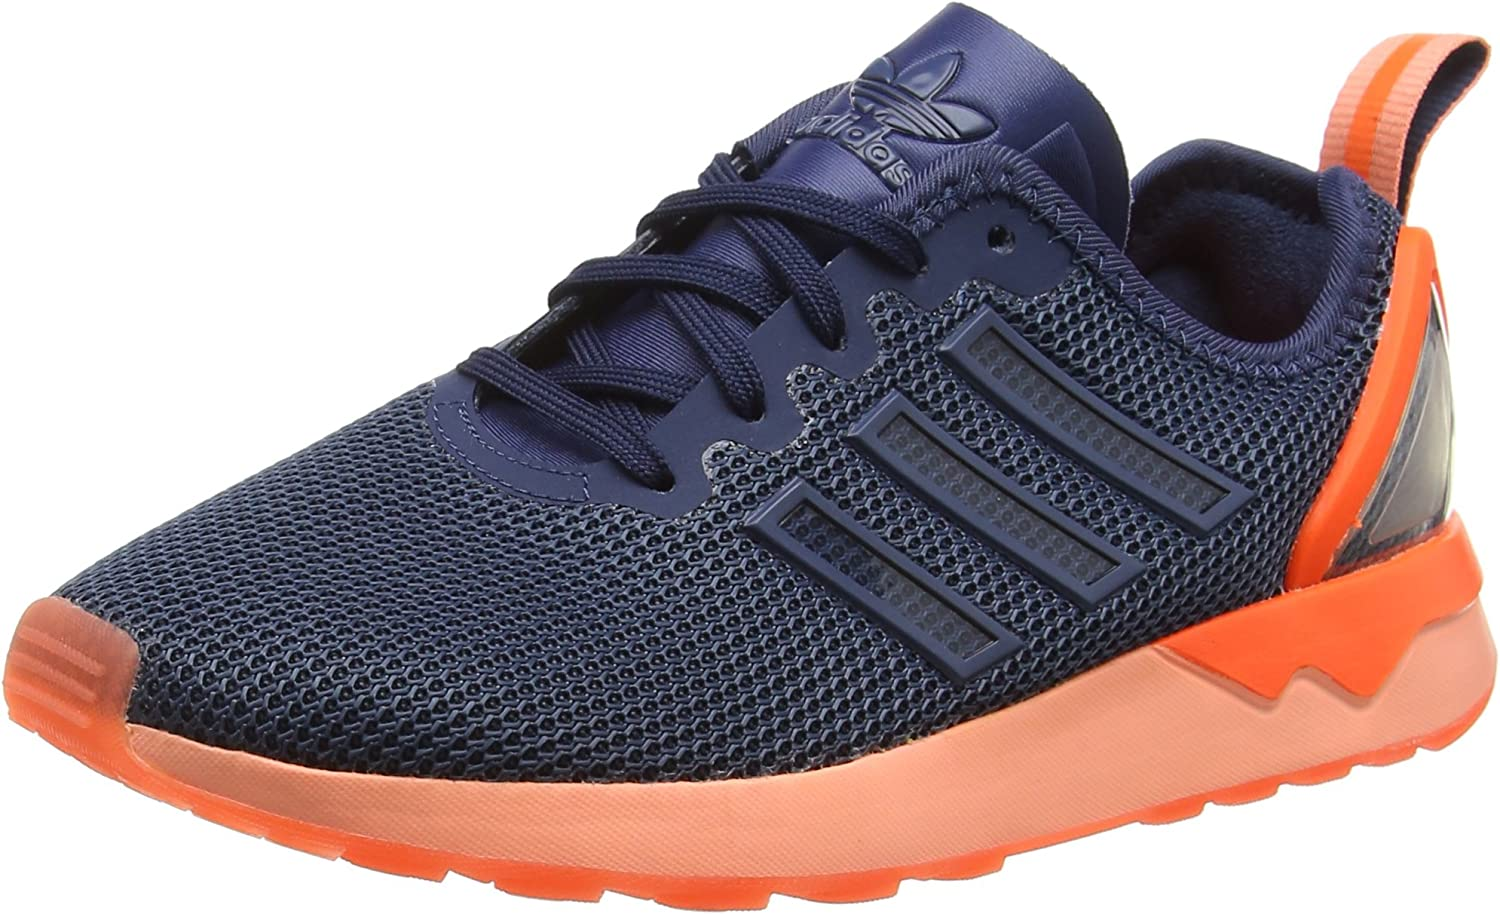 Adidas Unisex Adults' Zx Flux Adv Running shoes